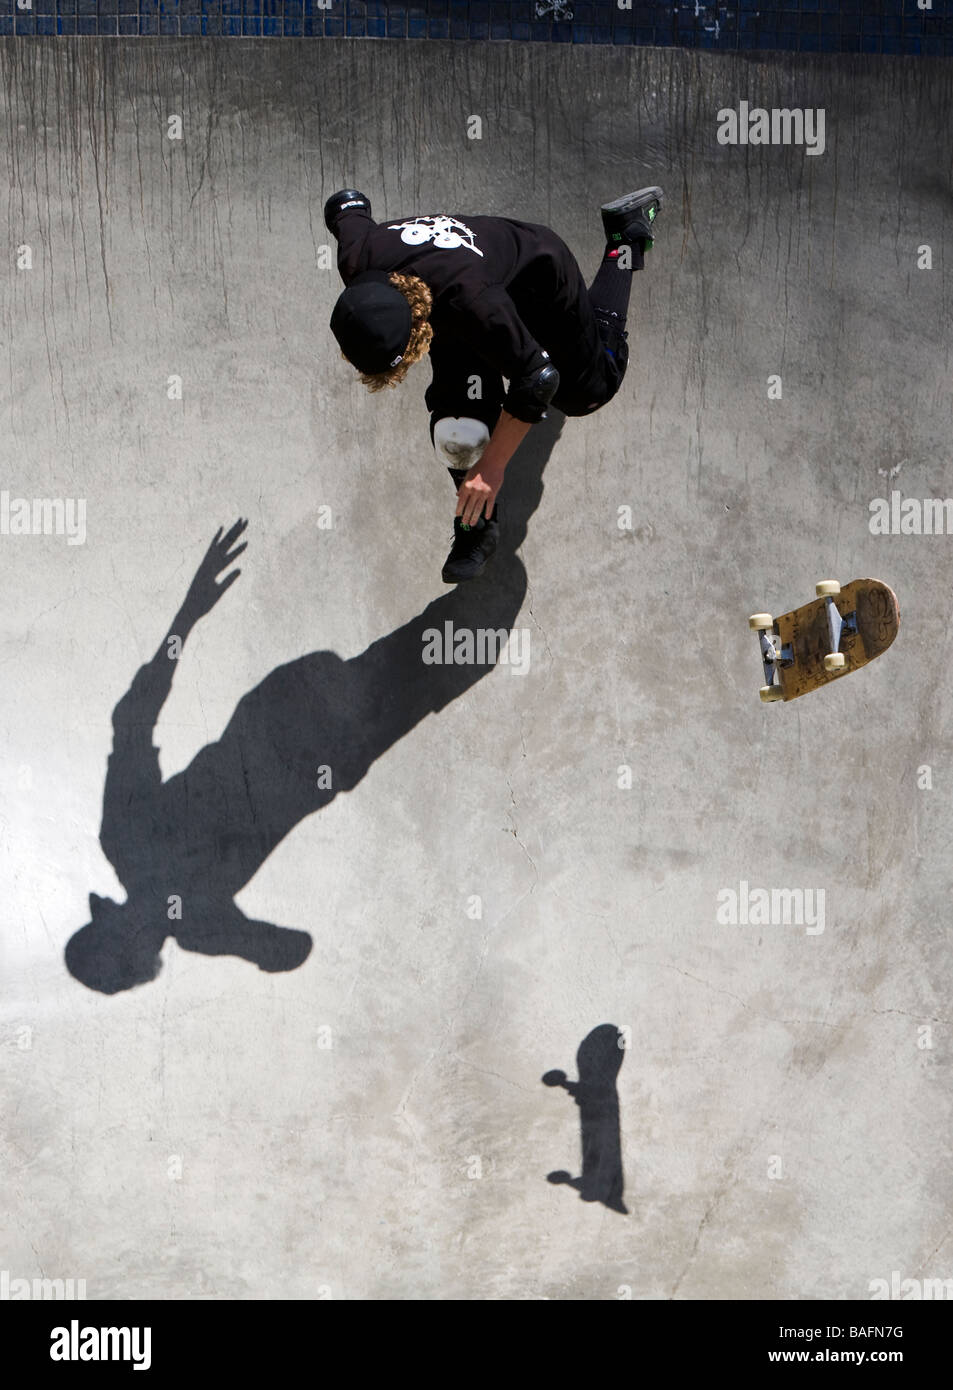 Planche faisant des tours Culver City Skateboard Park Culver City Los Angeles County California United States of Banque D'Images